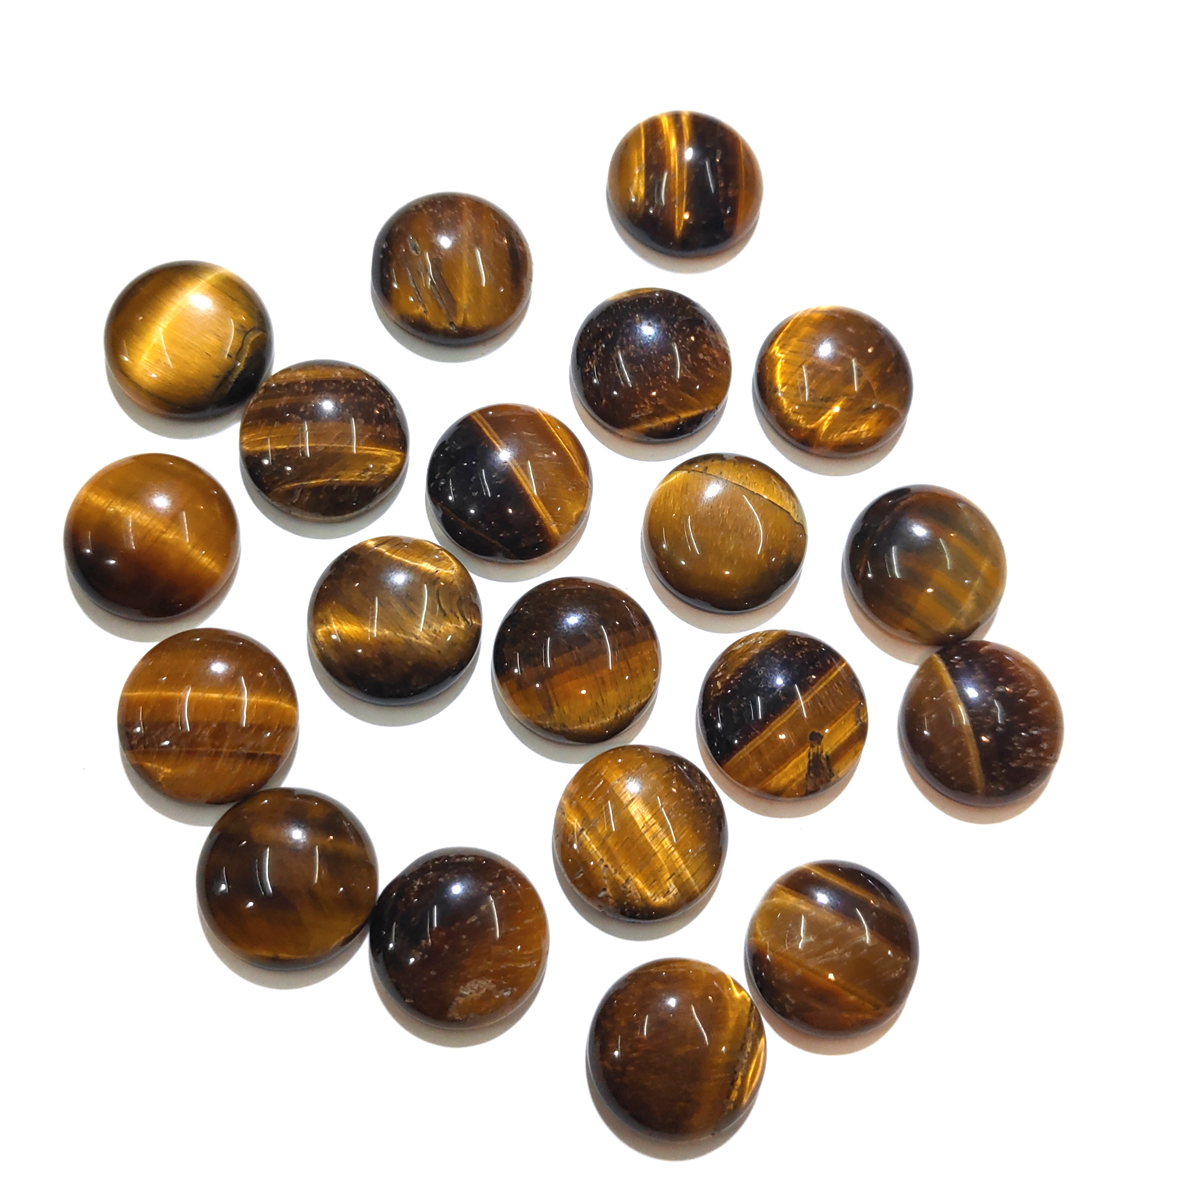 20 PCS Tiger Eye Stone Natural Stones Cabochon 6mm 8mm 10mm Round No Hole For Making Jewelry DIY